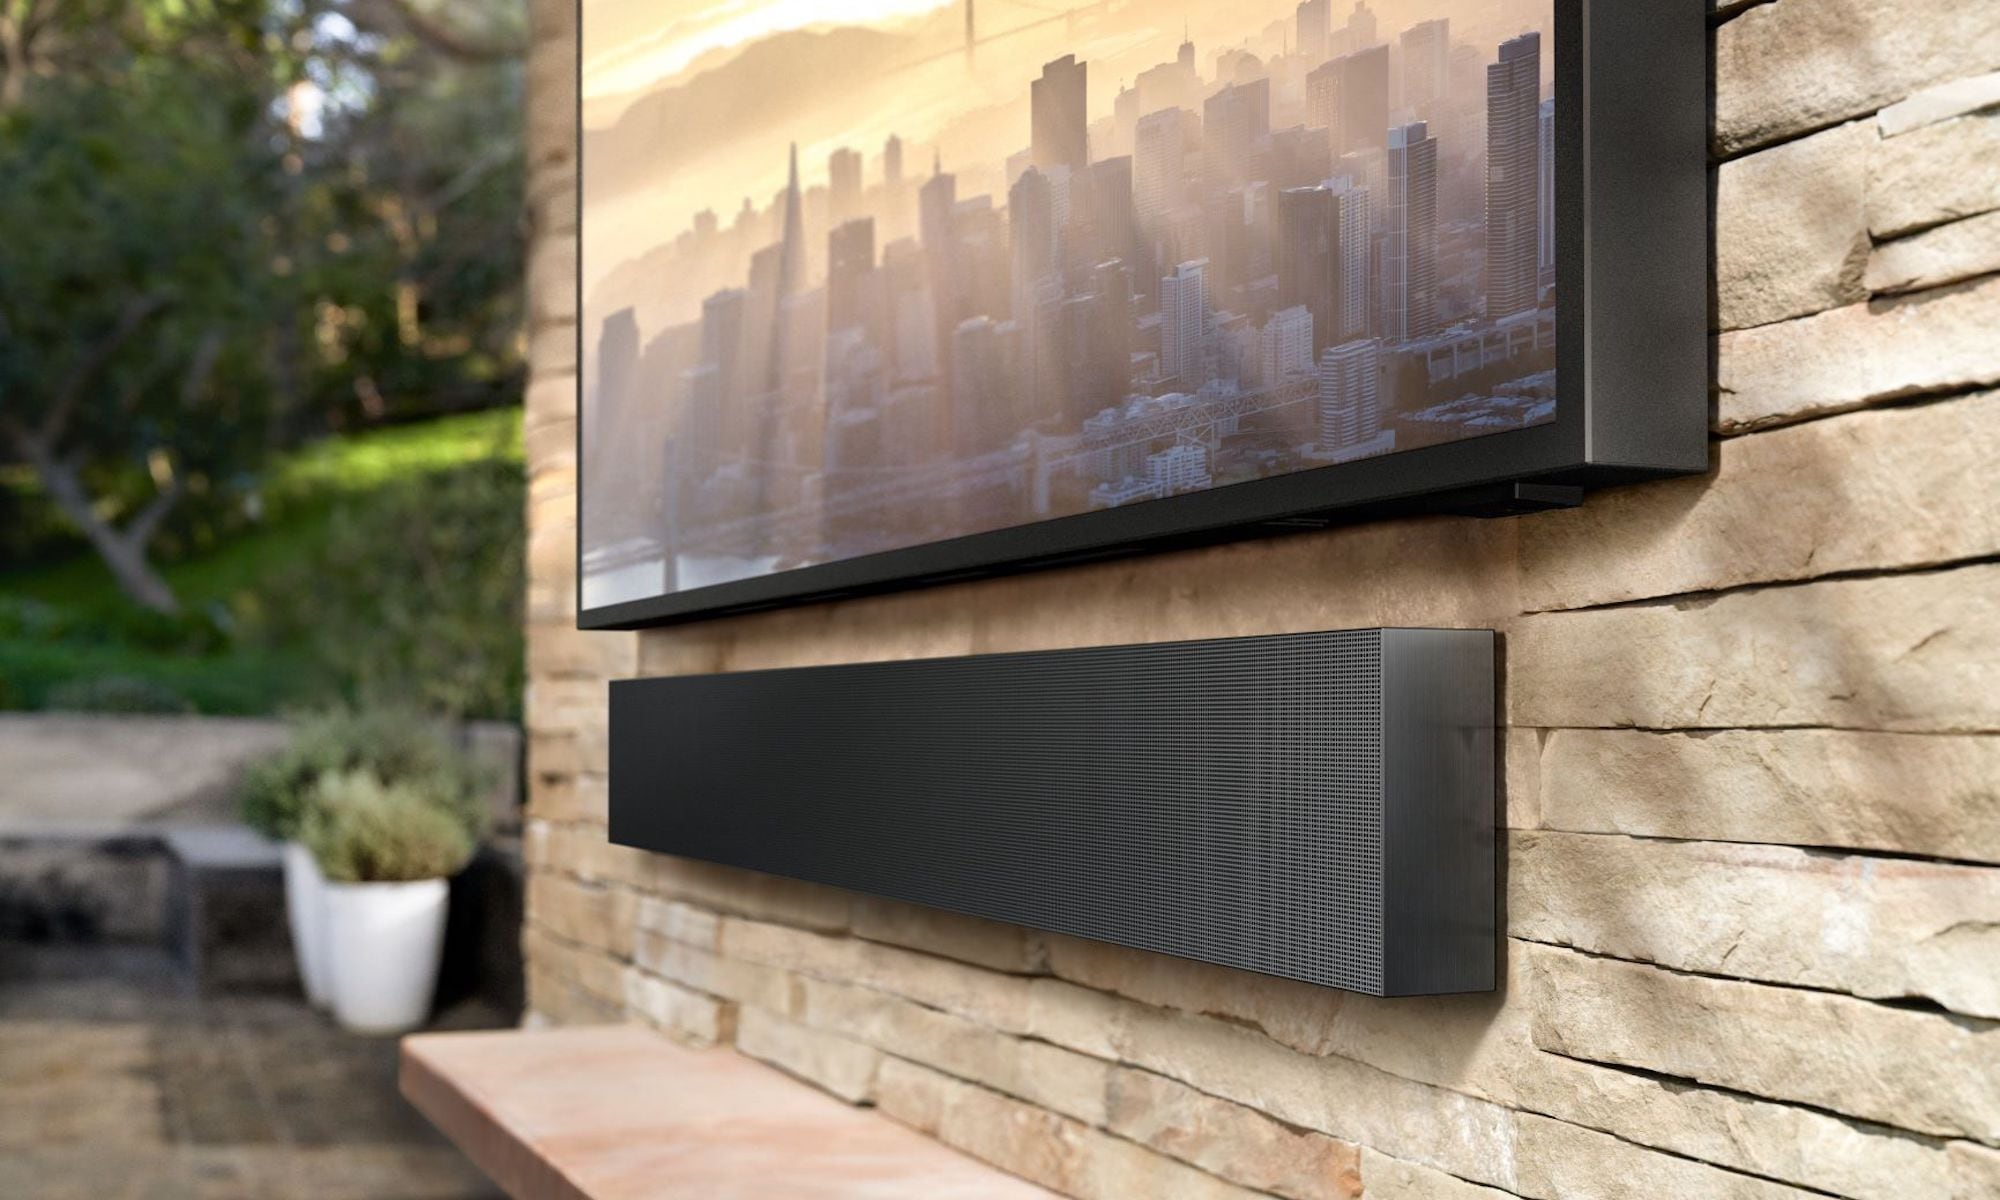 Samsung Terrace TV setup with soundbar